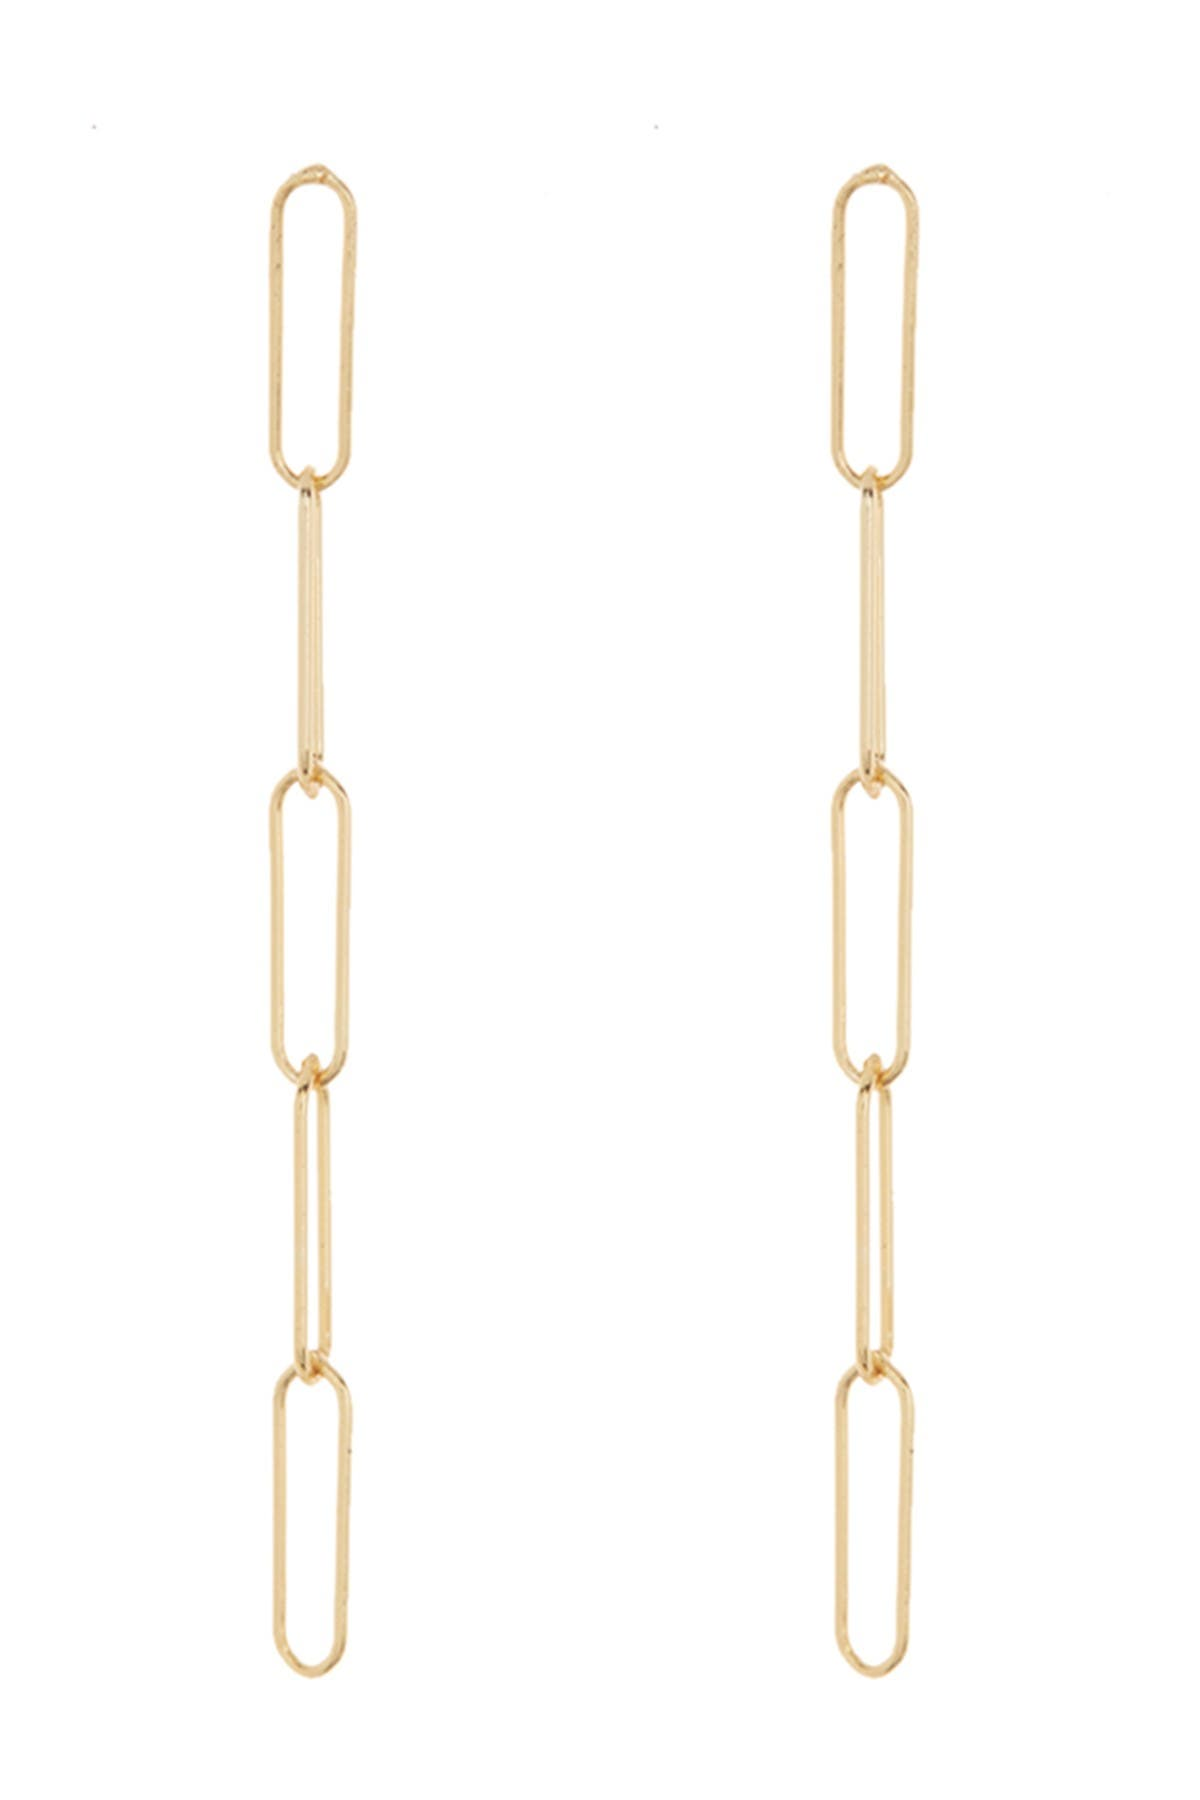 Image of ADORNIA 14K Yellow Gold Vermeil Paperclip Drop Earrings